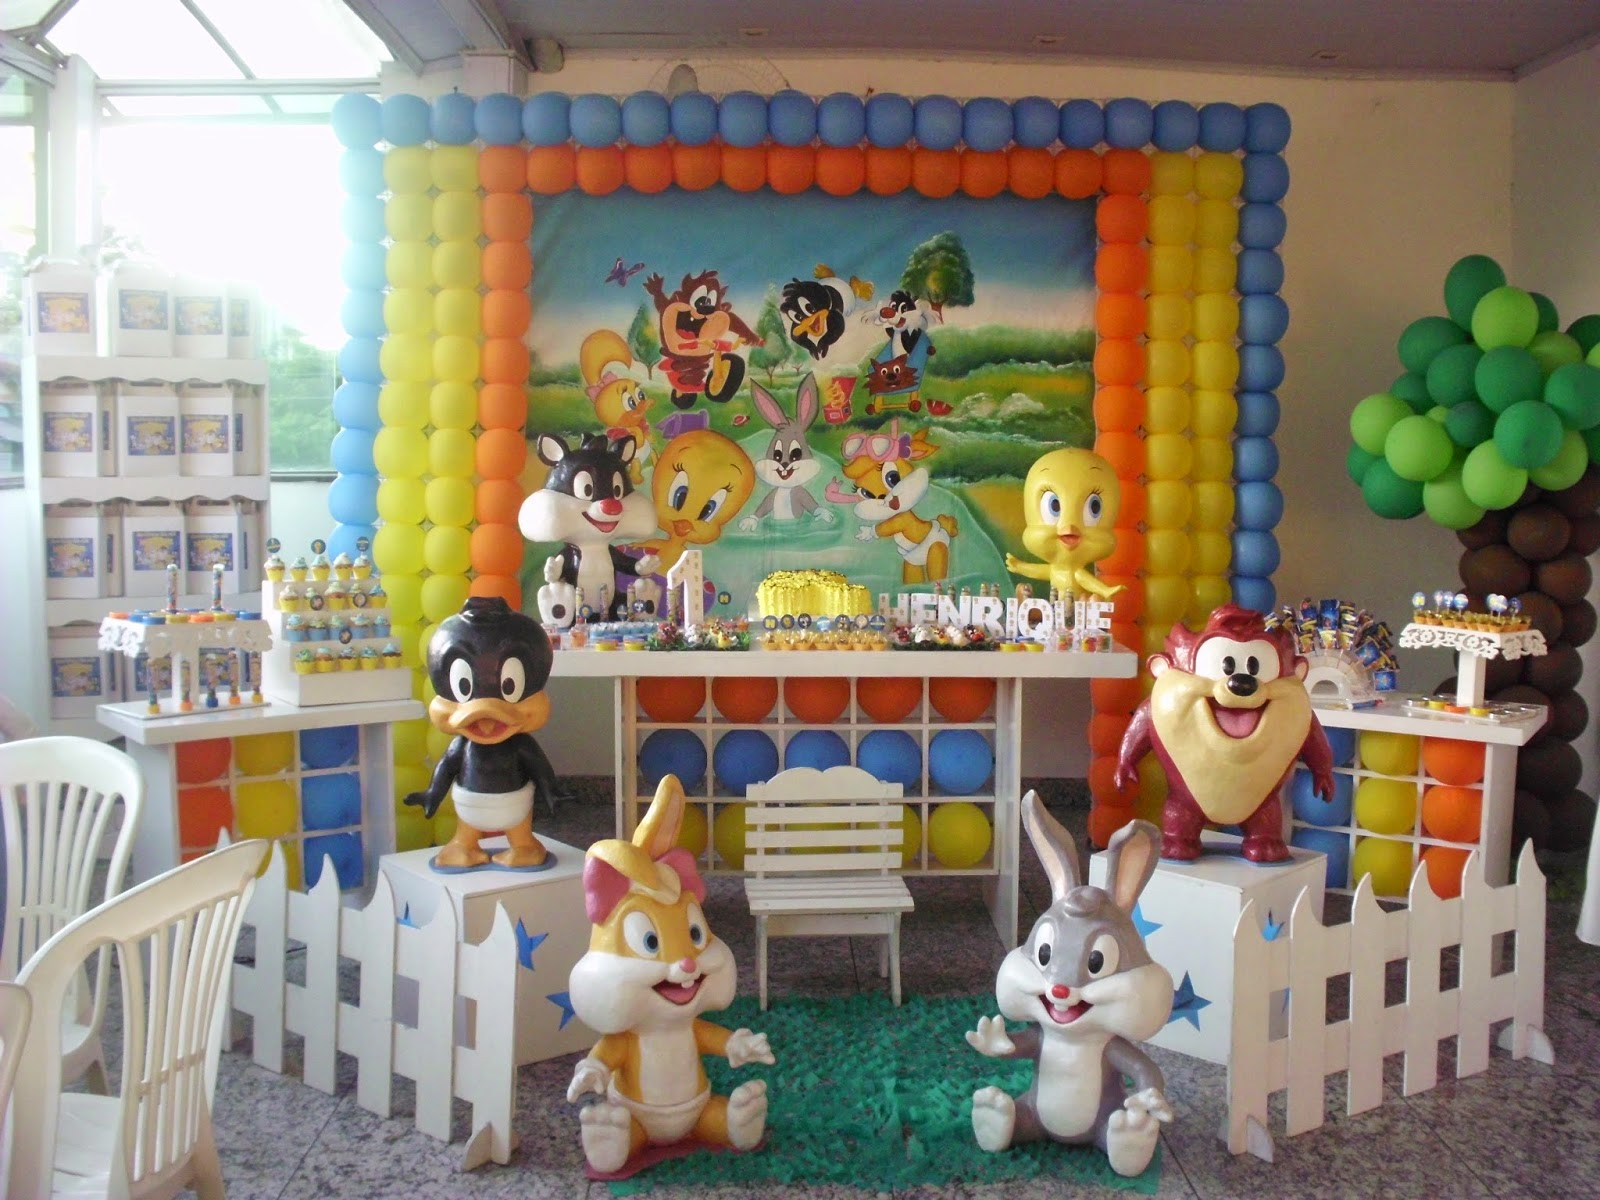 R g ar e decor anivers rio do henrique tema for Baby looney tune decoration